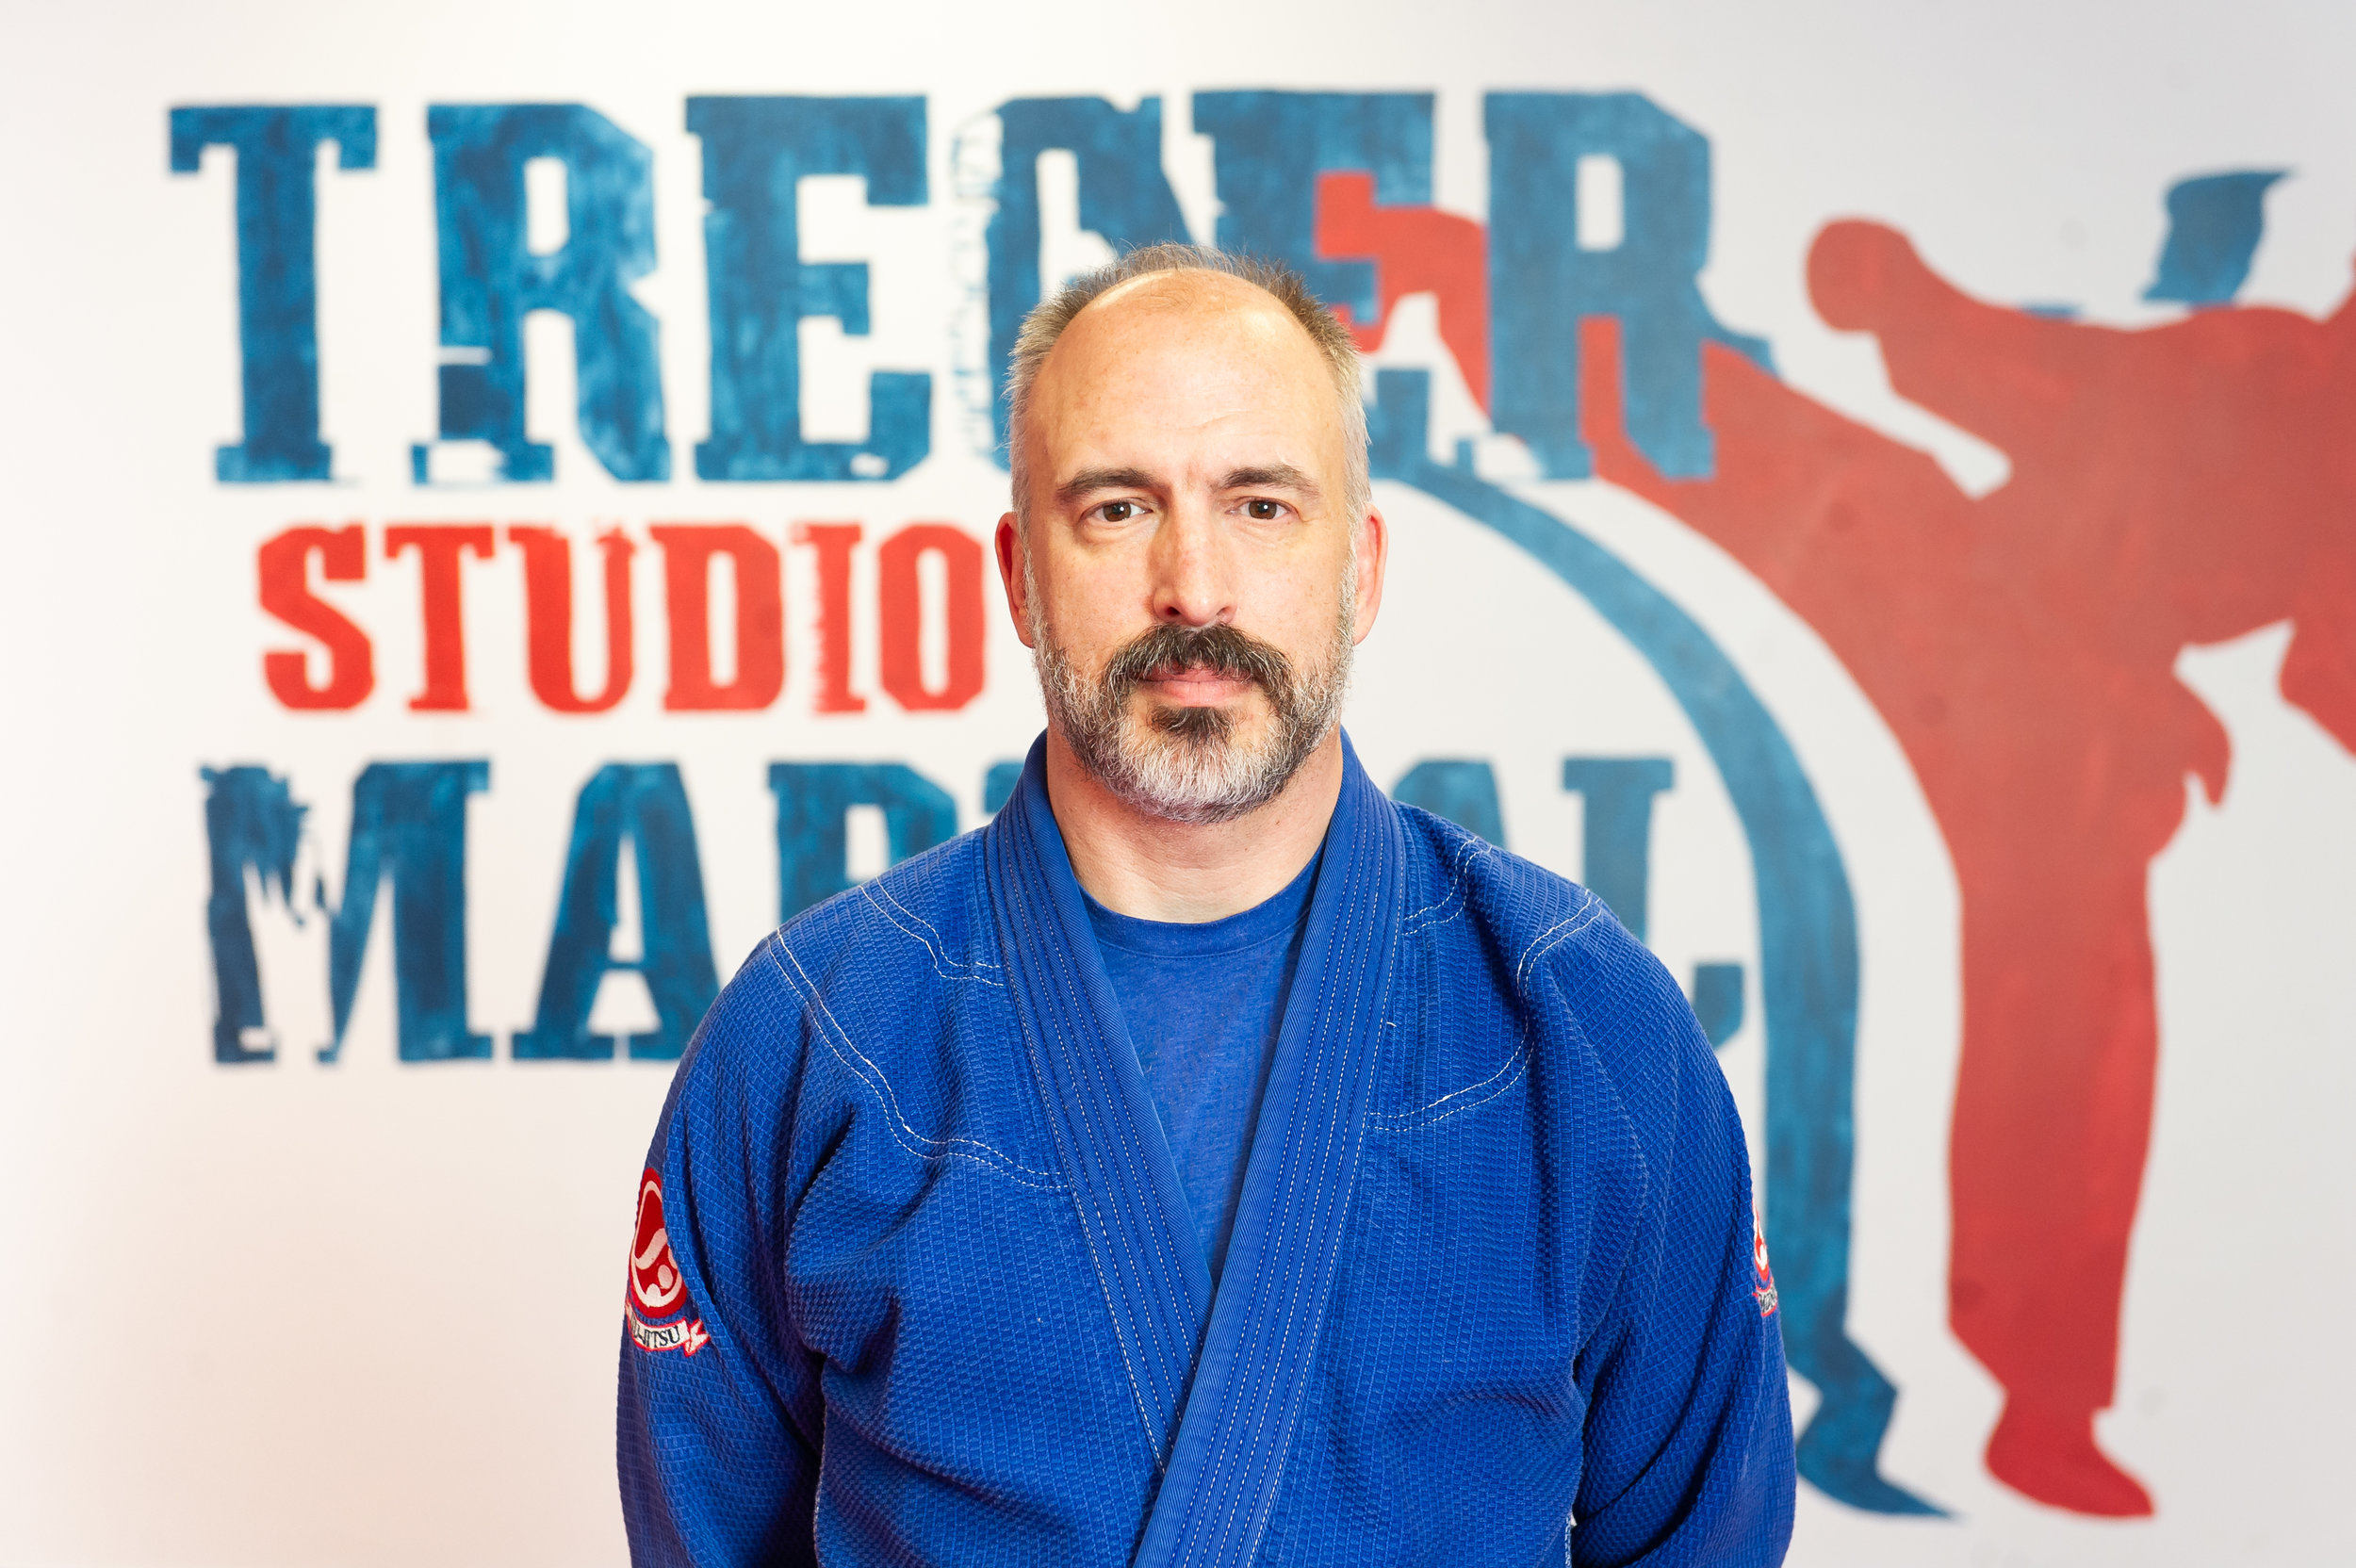 SENSEI TOM MACIAK Tom Maciak is one of our Brazilian Jiu Jitsu Instructors. Tom has been training BJJ since 2008 and is currently a Brown Belt under Steven Keckan. Tom received his BJJ instructor certification in 2010 under Professor Marcio Corletta, which emphasizes technical fundamentals and self-defense aspects of BJJ. Tom started marital arts in 1989 in Yoshinkan Aikido and has earned a black belt, plus a brown belt (1 kyu) in Budokan Kendo. He also competed in collegiate fencing (foil), and completed Michael Janich's Martial Blade Concepts System. He has been a Defensive Tactics Instructor, teaching weapons retention, handcuffing, hand to hand and PPCT. -